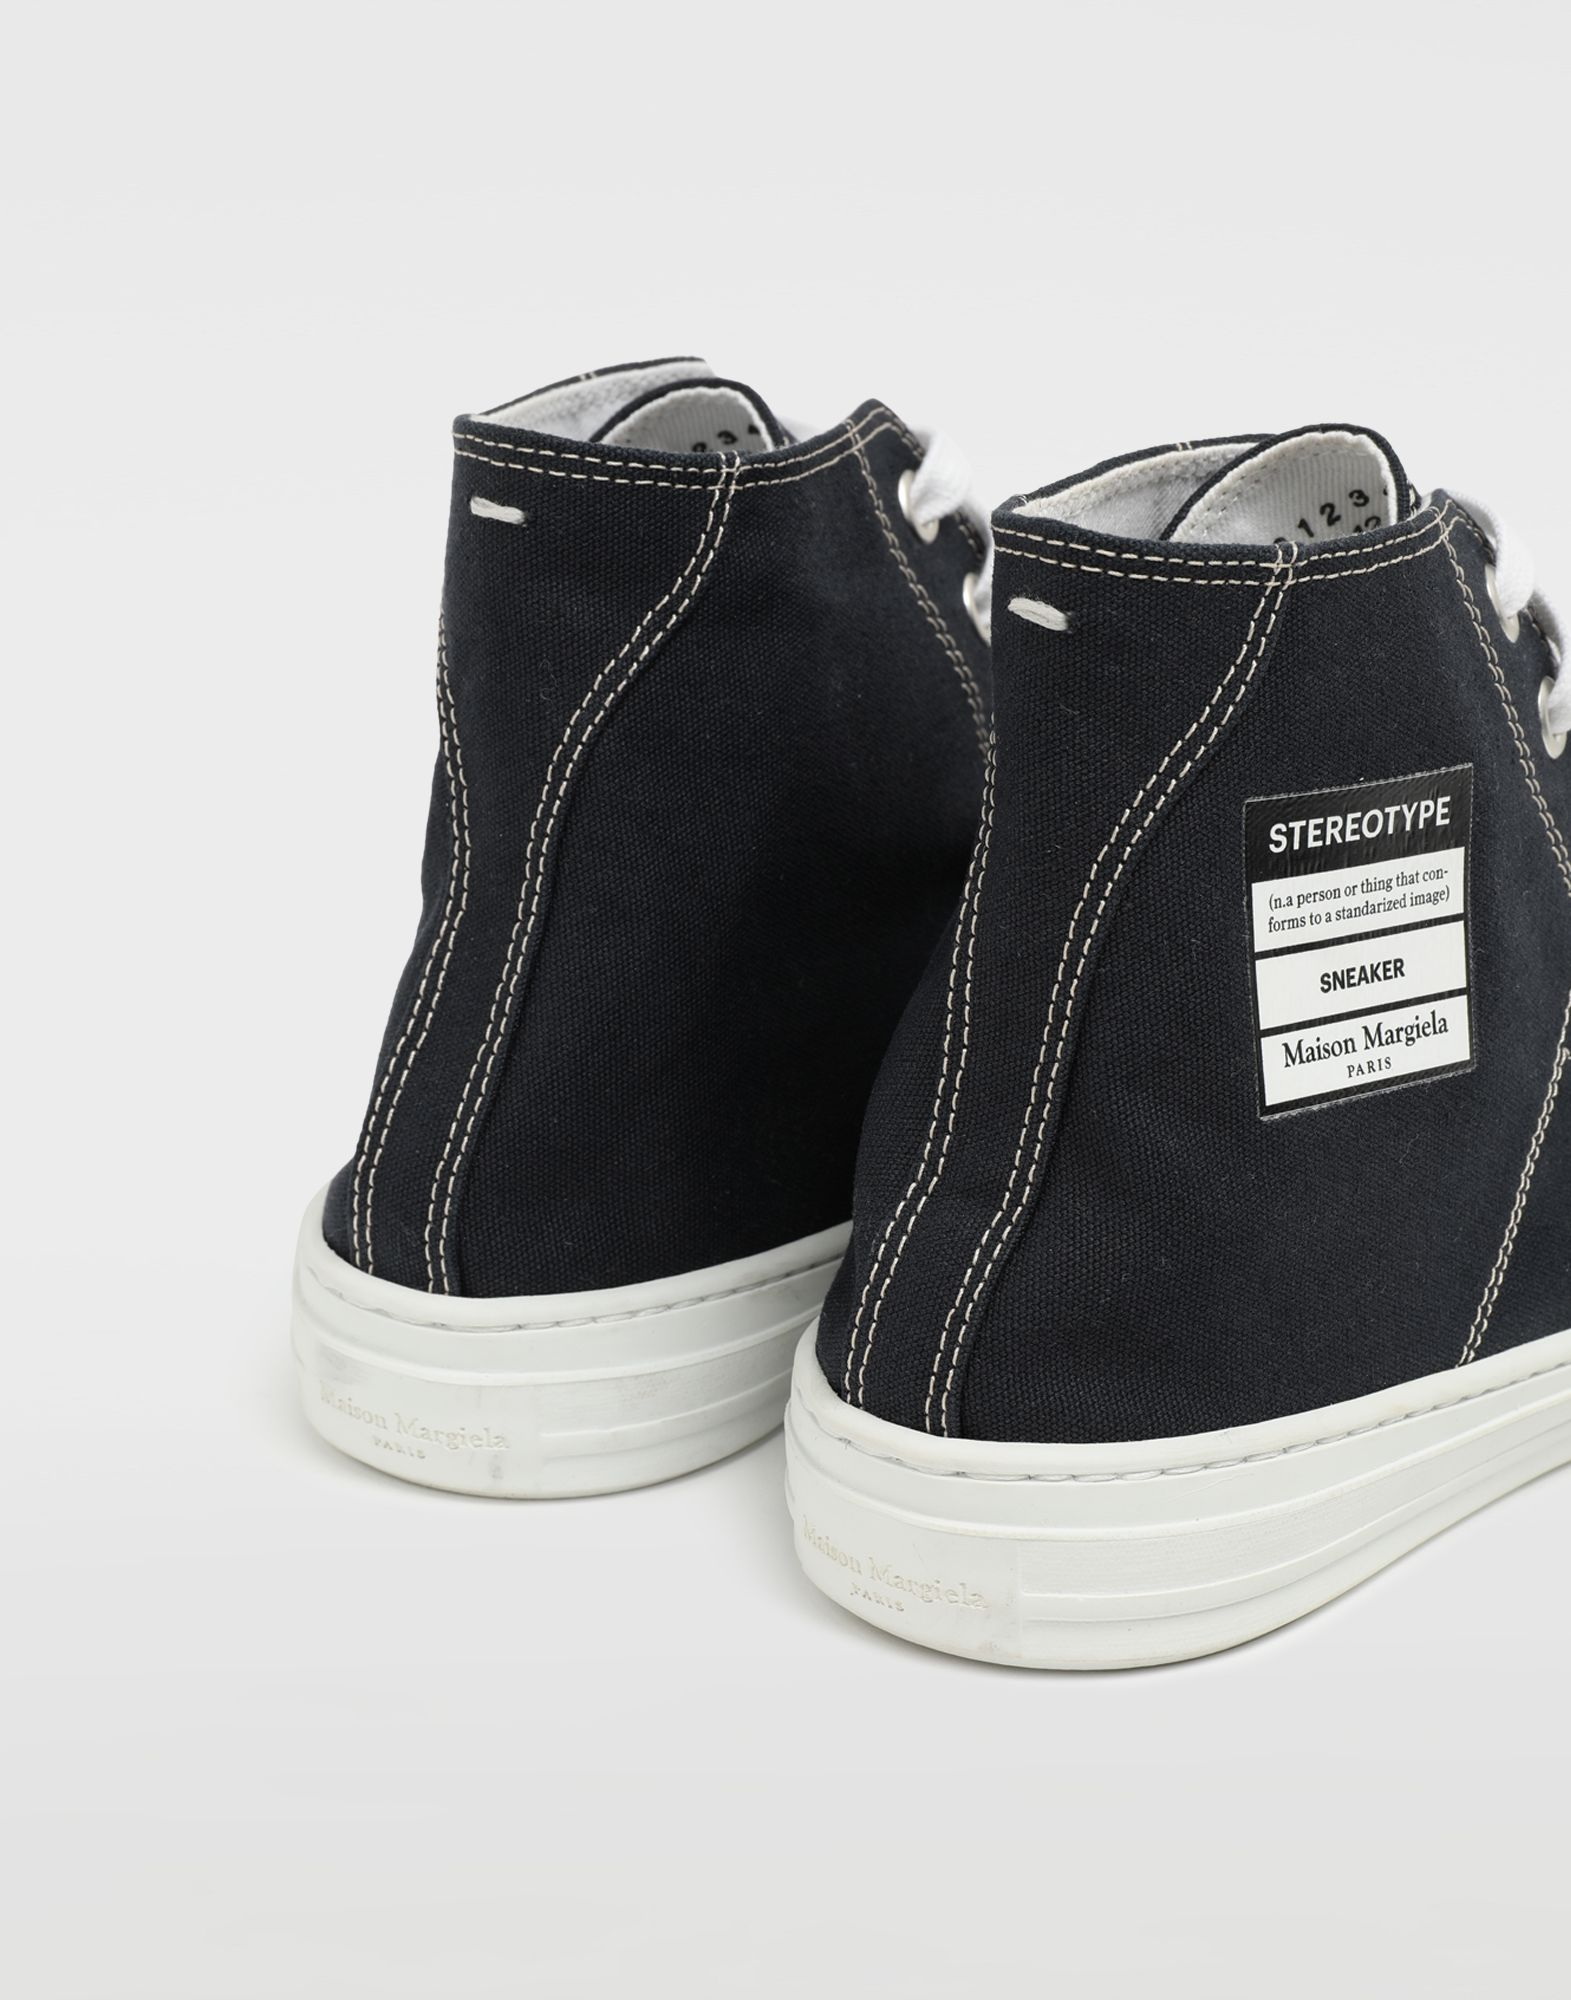 MAISON MARGIELA Stereotype high top sneakers Sneakers Man e